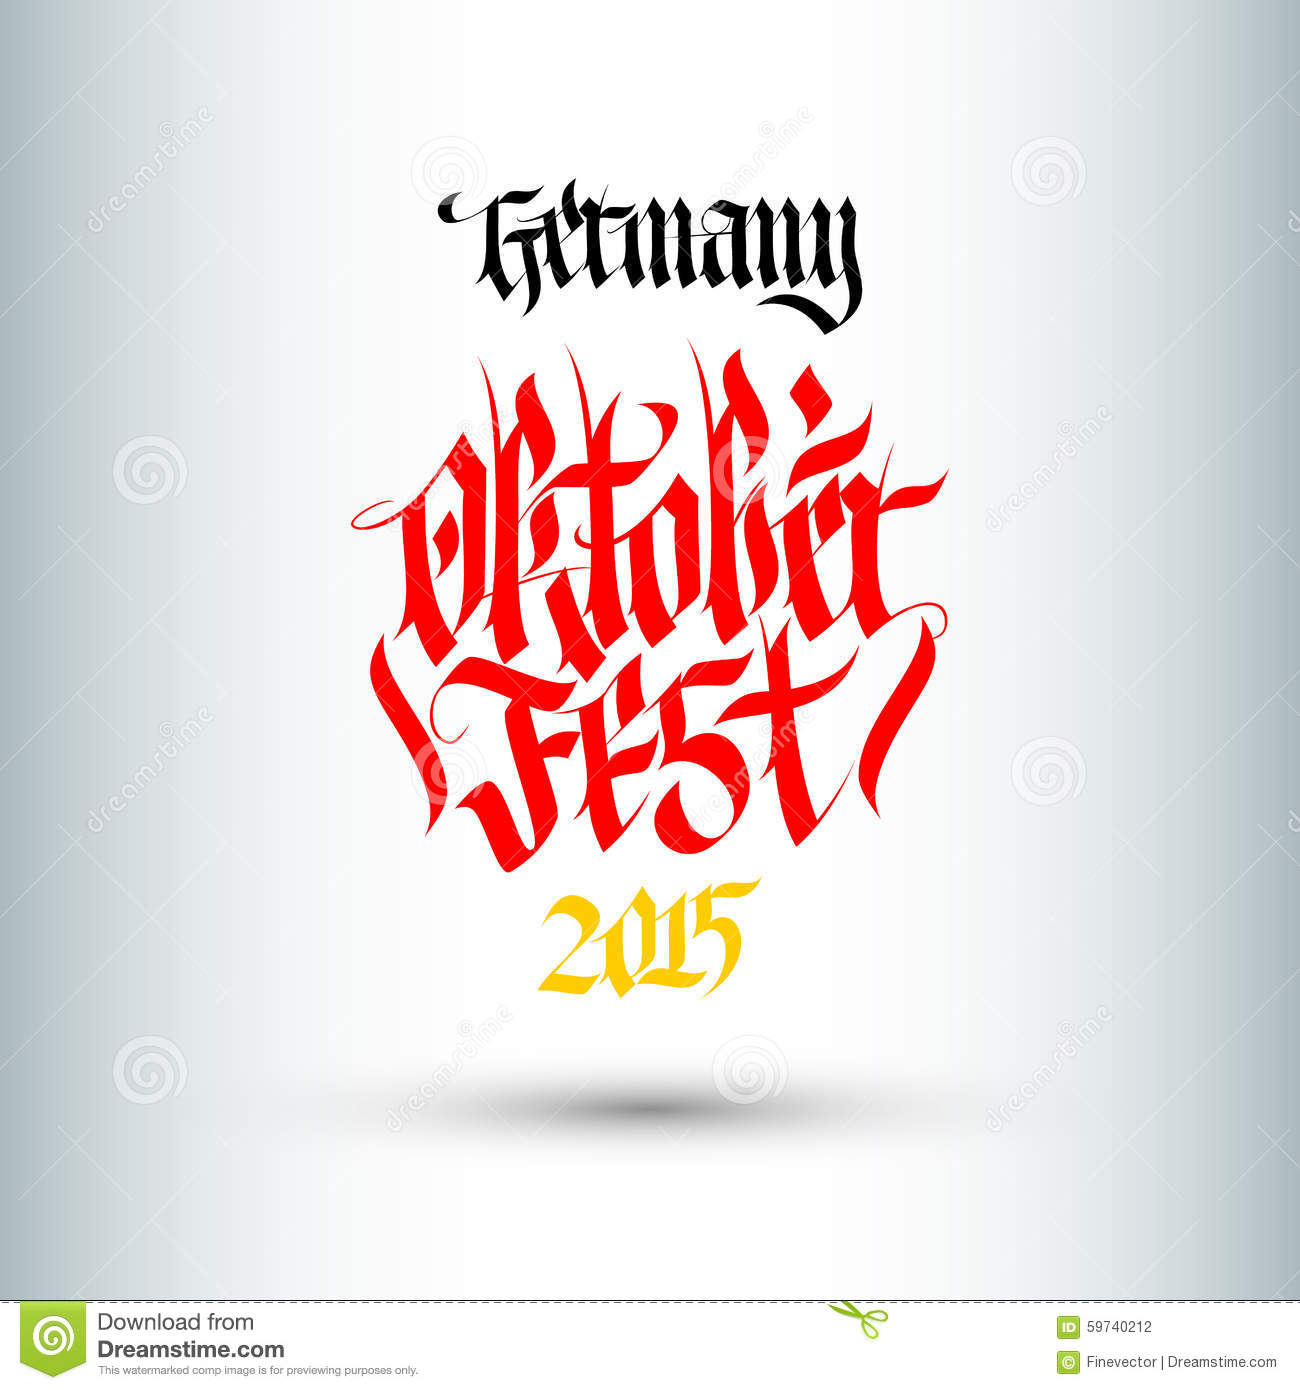 Octoberfest. Holiday Vector Illustration With Lettering Composition.